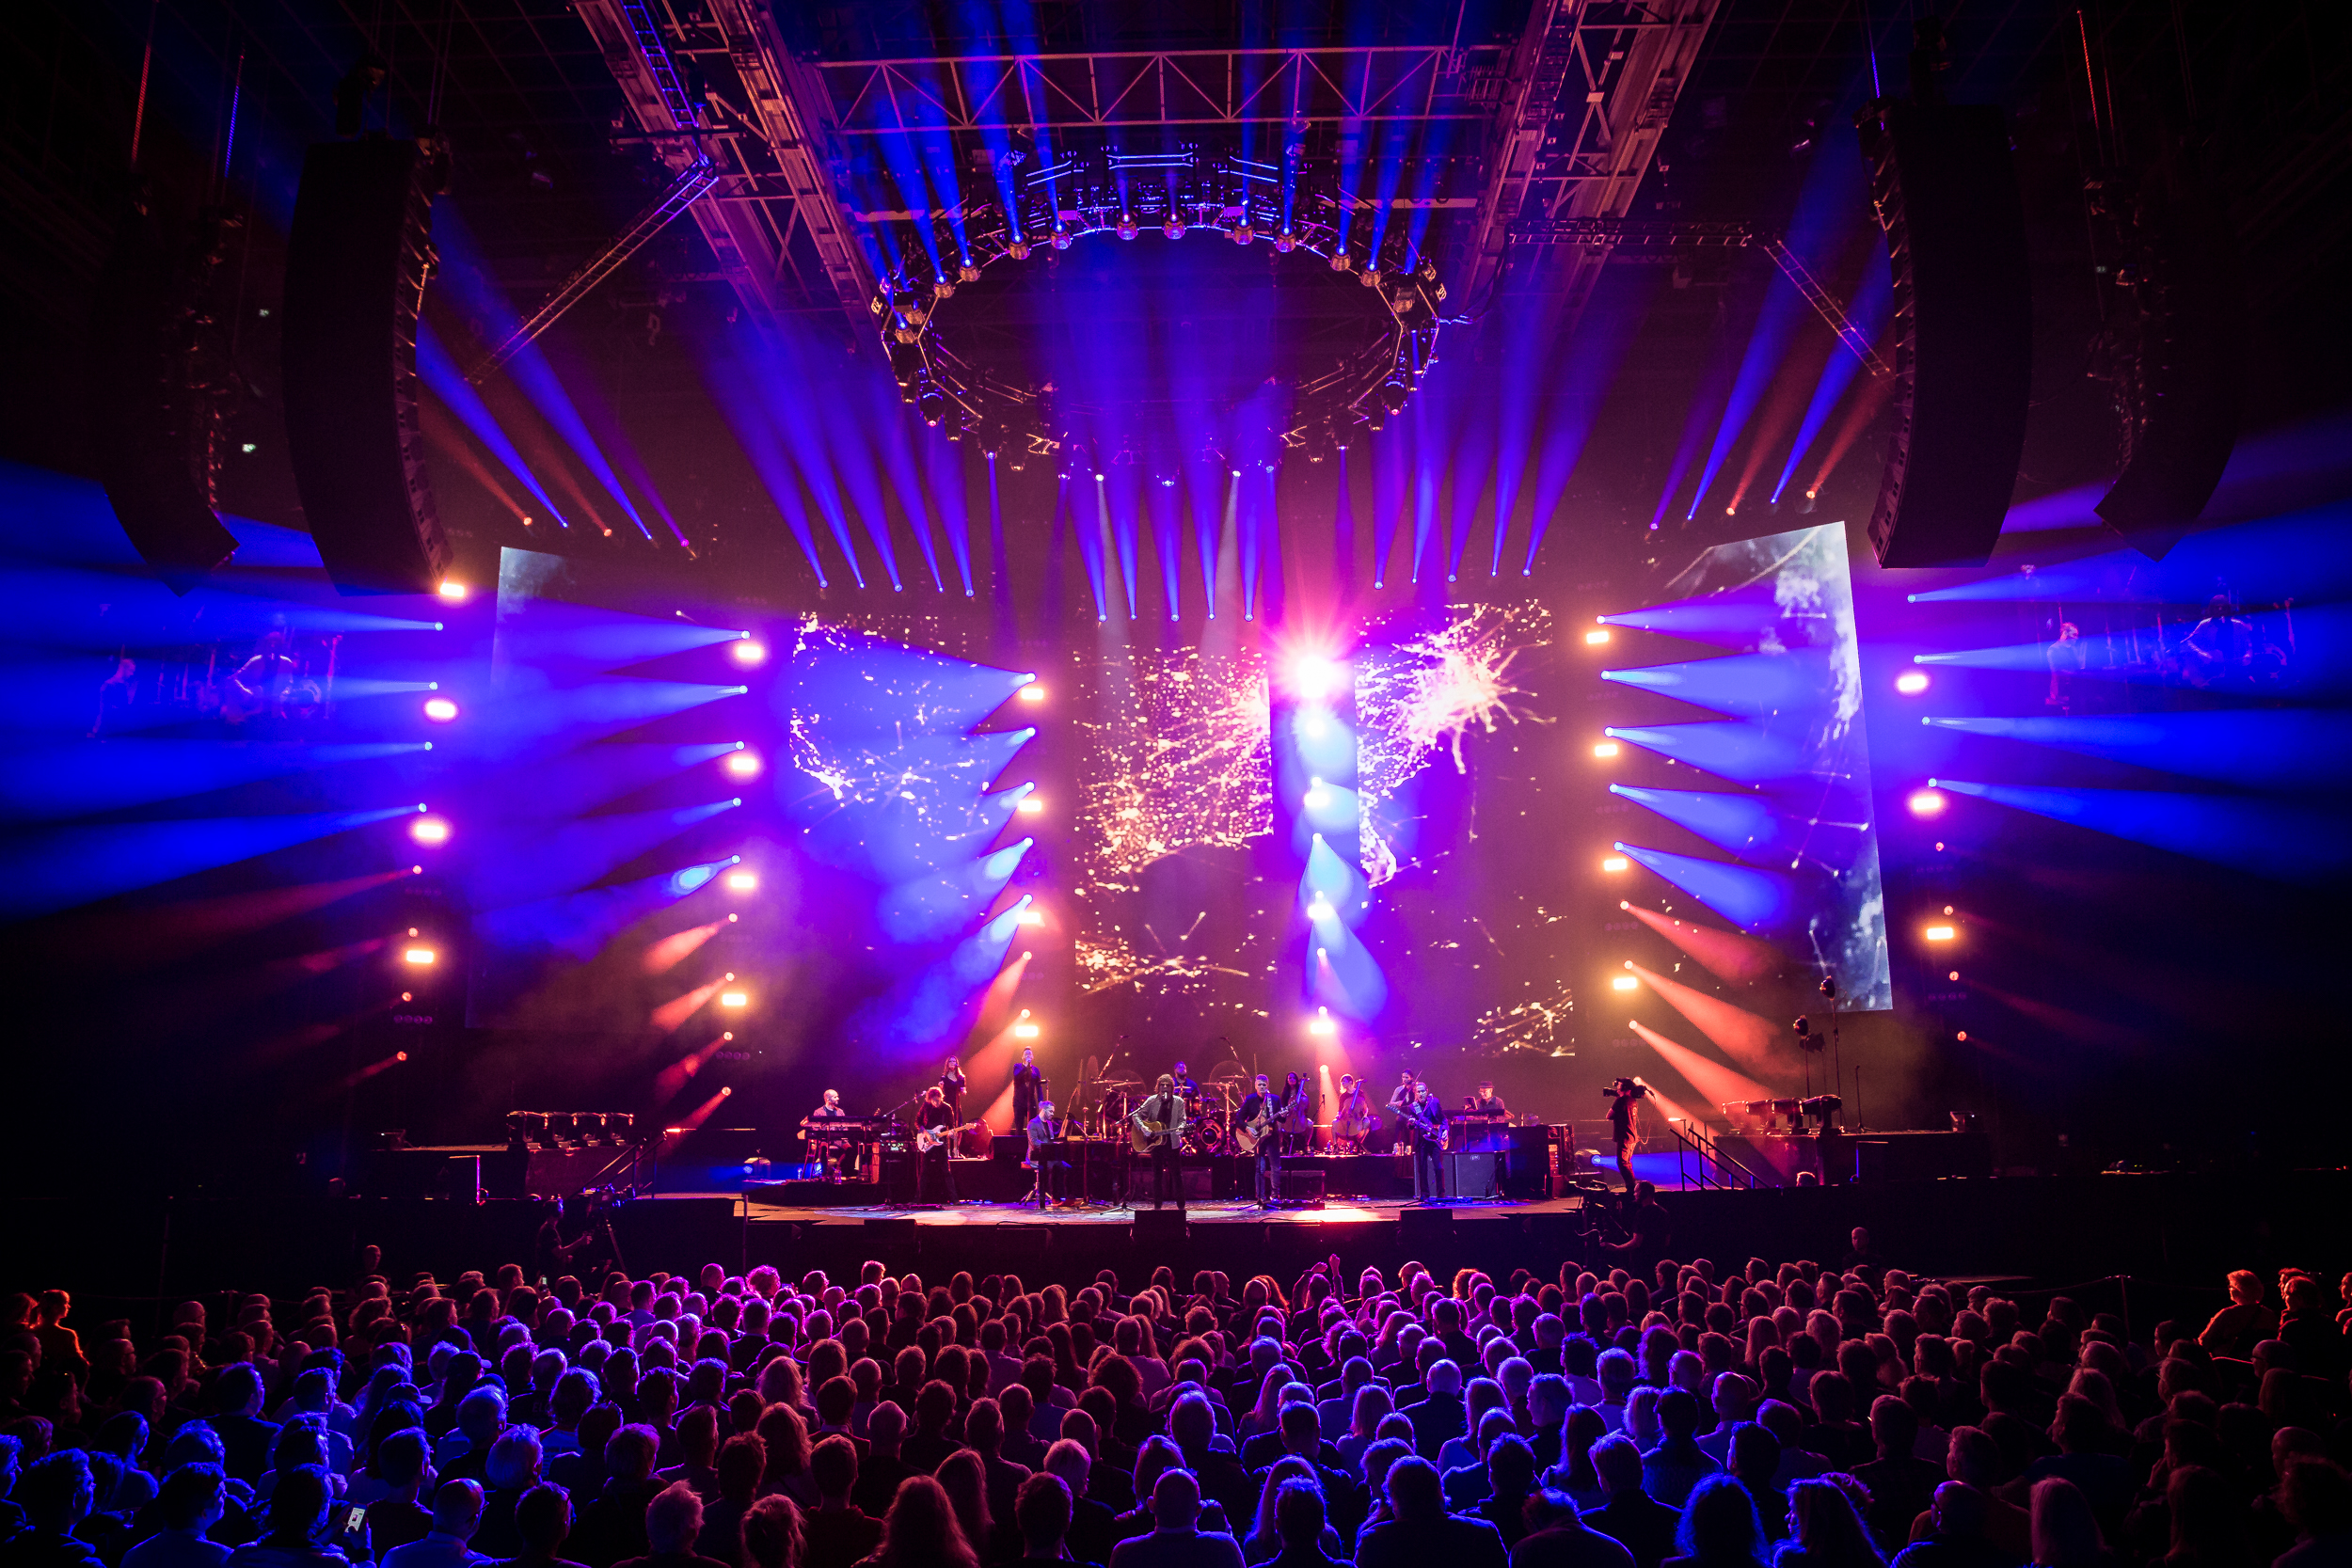 Jeff Lynne's ELO live at Oslo Spektrum